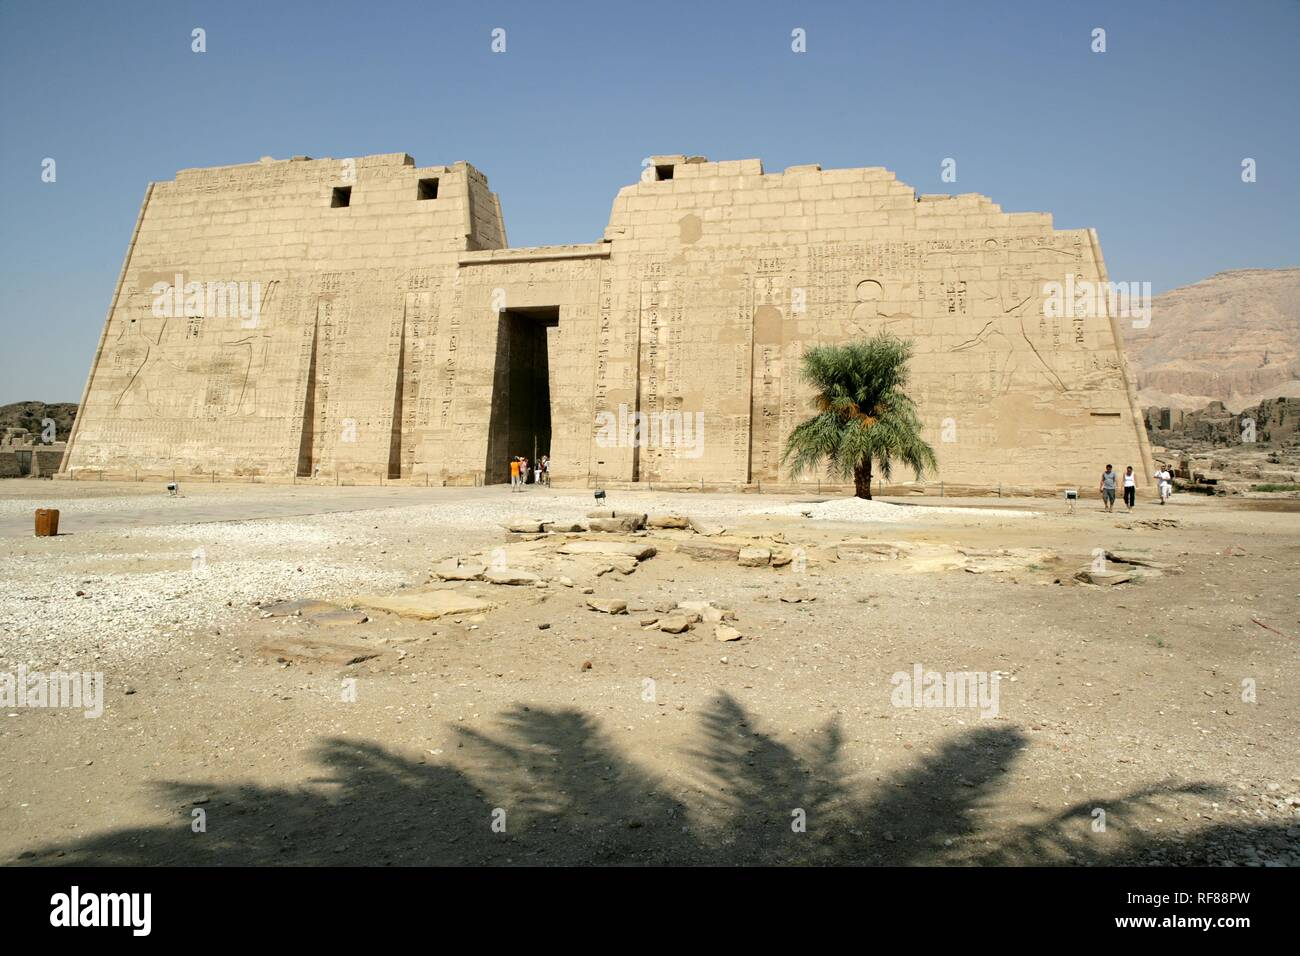 Medinet Habu, Mortuary Temple of Ramesses III, West Thebes, Luxor, Egypt, Africa Stock Photo